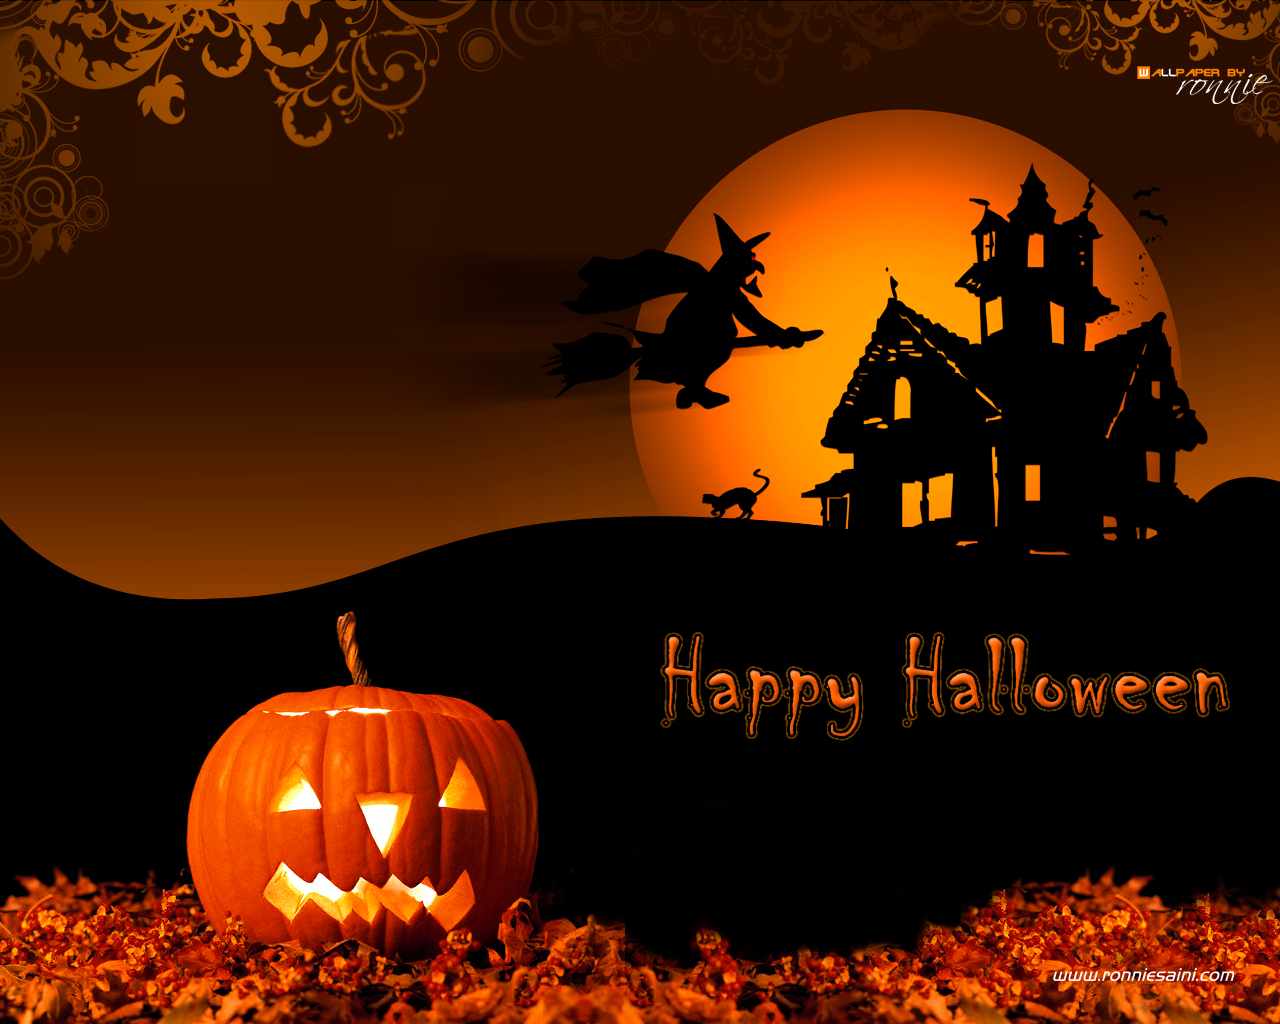 Happy Halloween horror scaryholidayevent images pictures 1280x1024